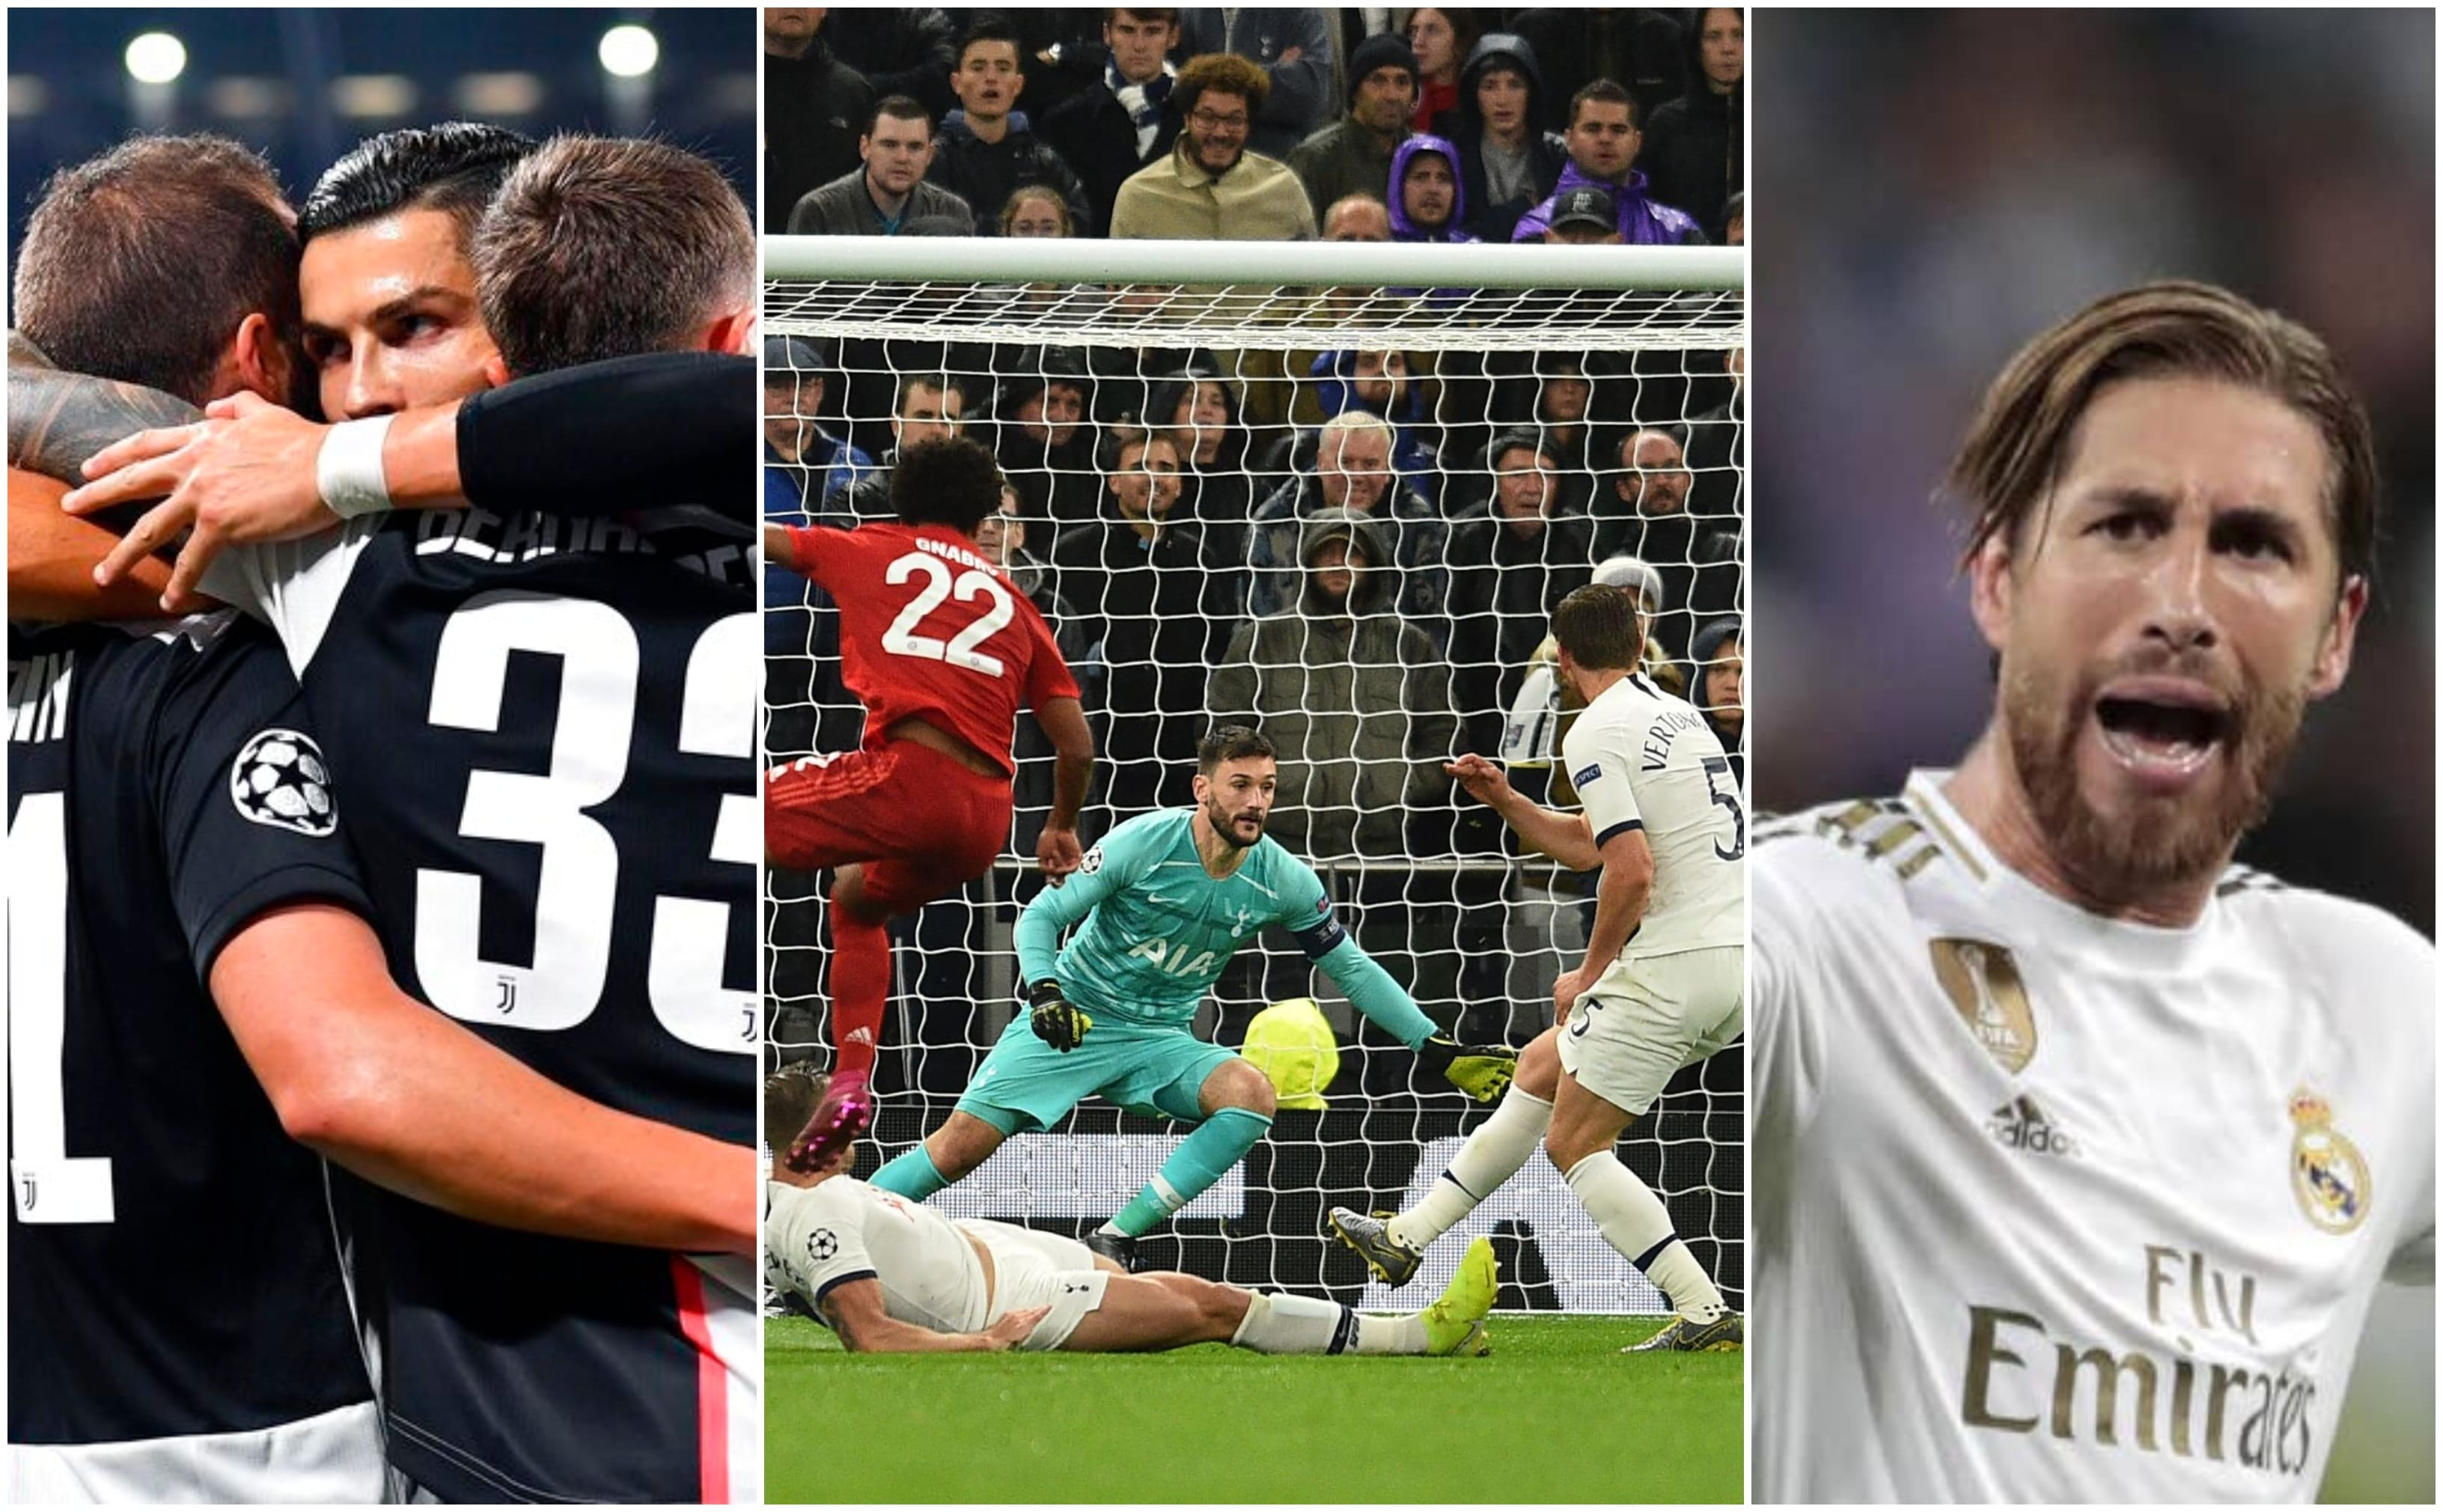 Champions League Round Up for Tuesday, 01.10.2019 – Bayern's Triumph, Real Madrid Upset